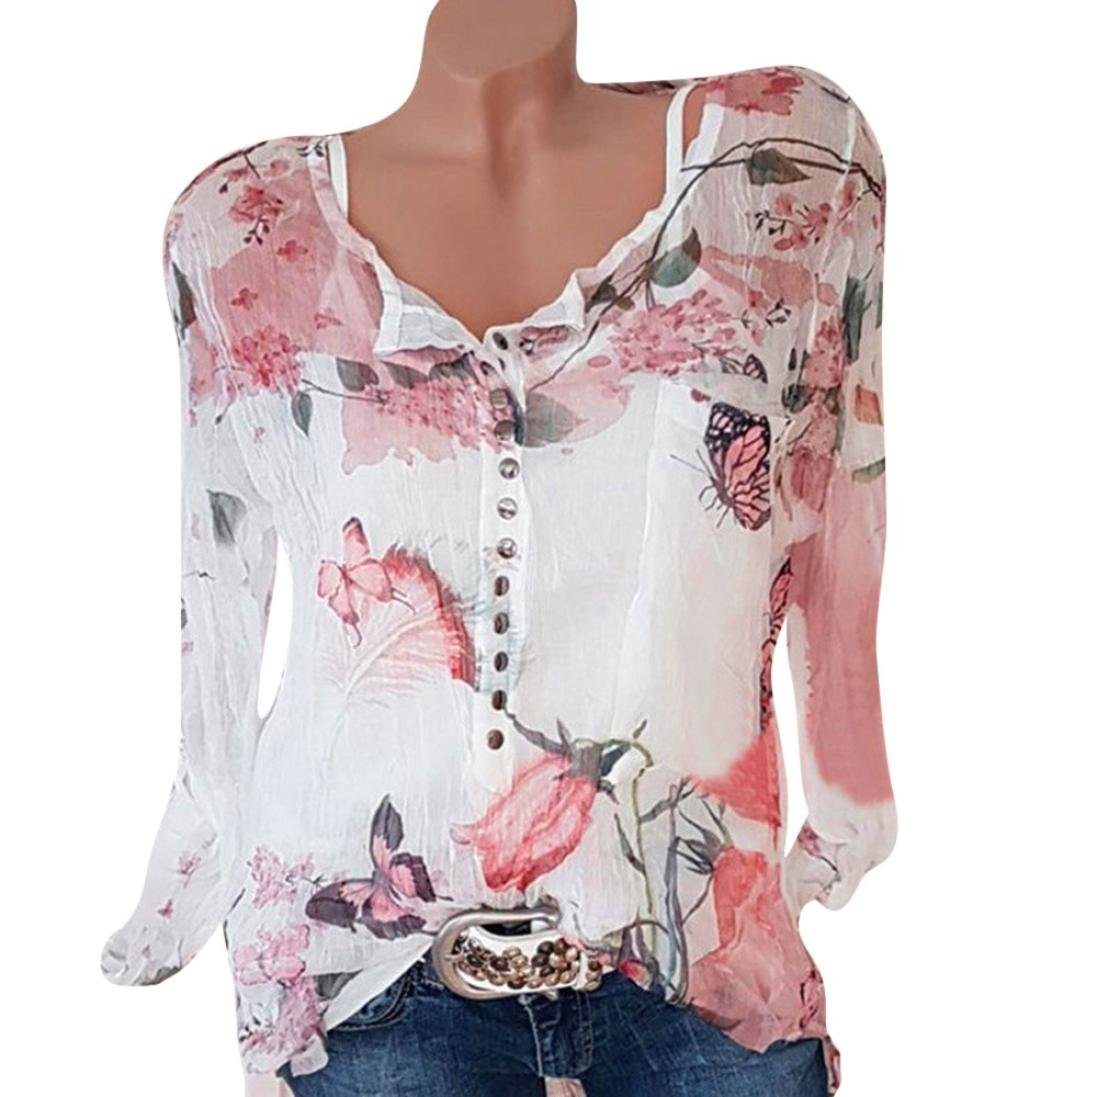 e9538c77817189 ❊Material Chiffon♥♥Women s summer off shoulder blouses long sleeves sexy  tops chiffon ruffles casual t shirt women s v neck ruched sleeveless sexy  blouse ...